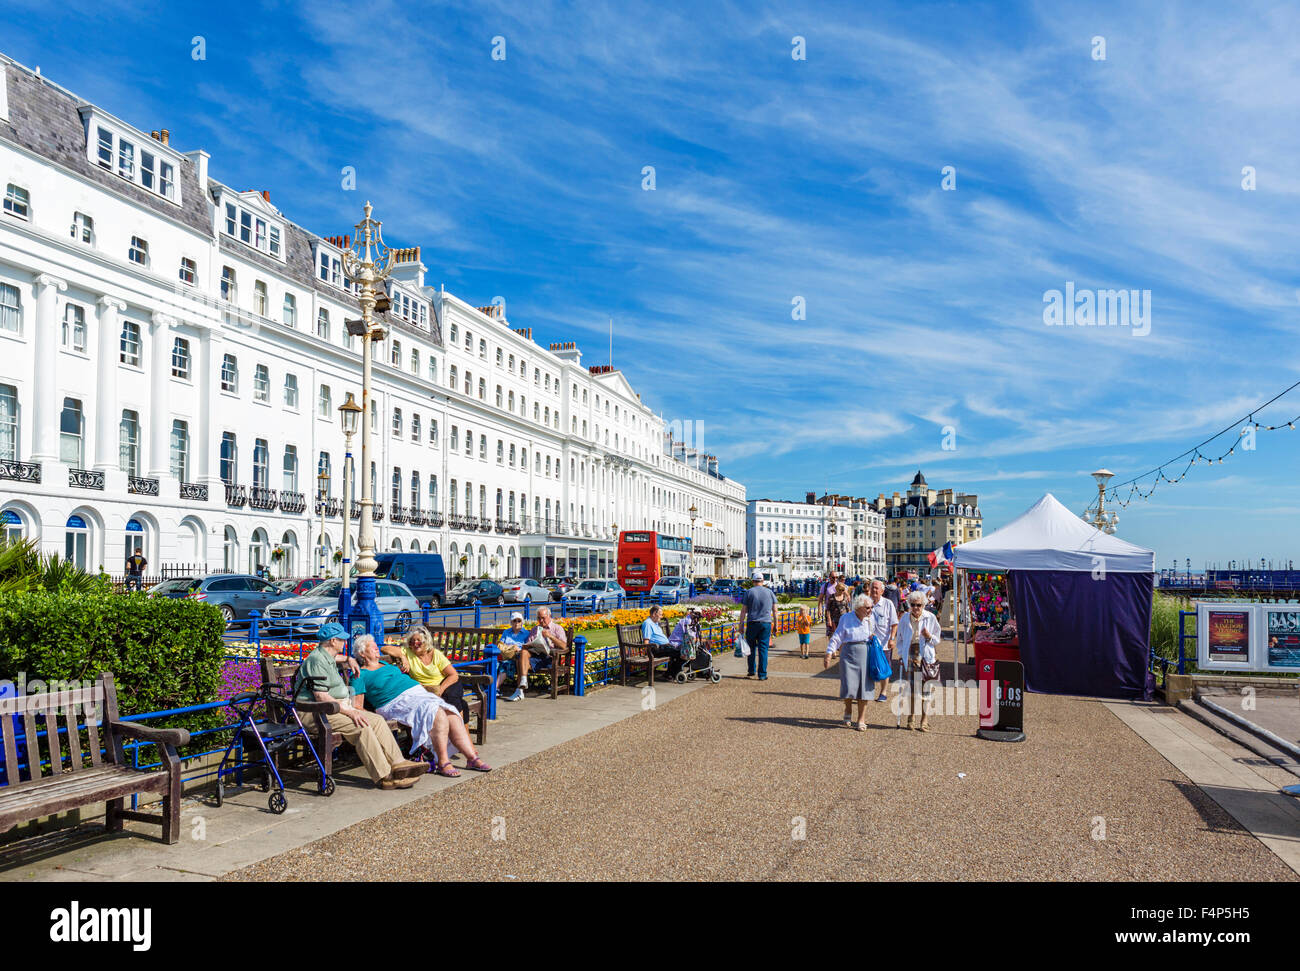 Grand Parade in Eastbourne, East Sussex, England, UK Stockbild